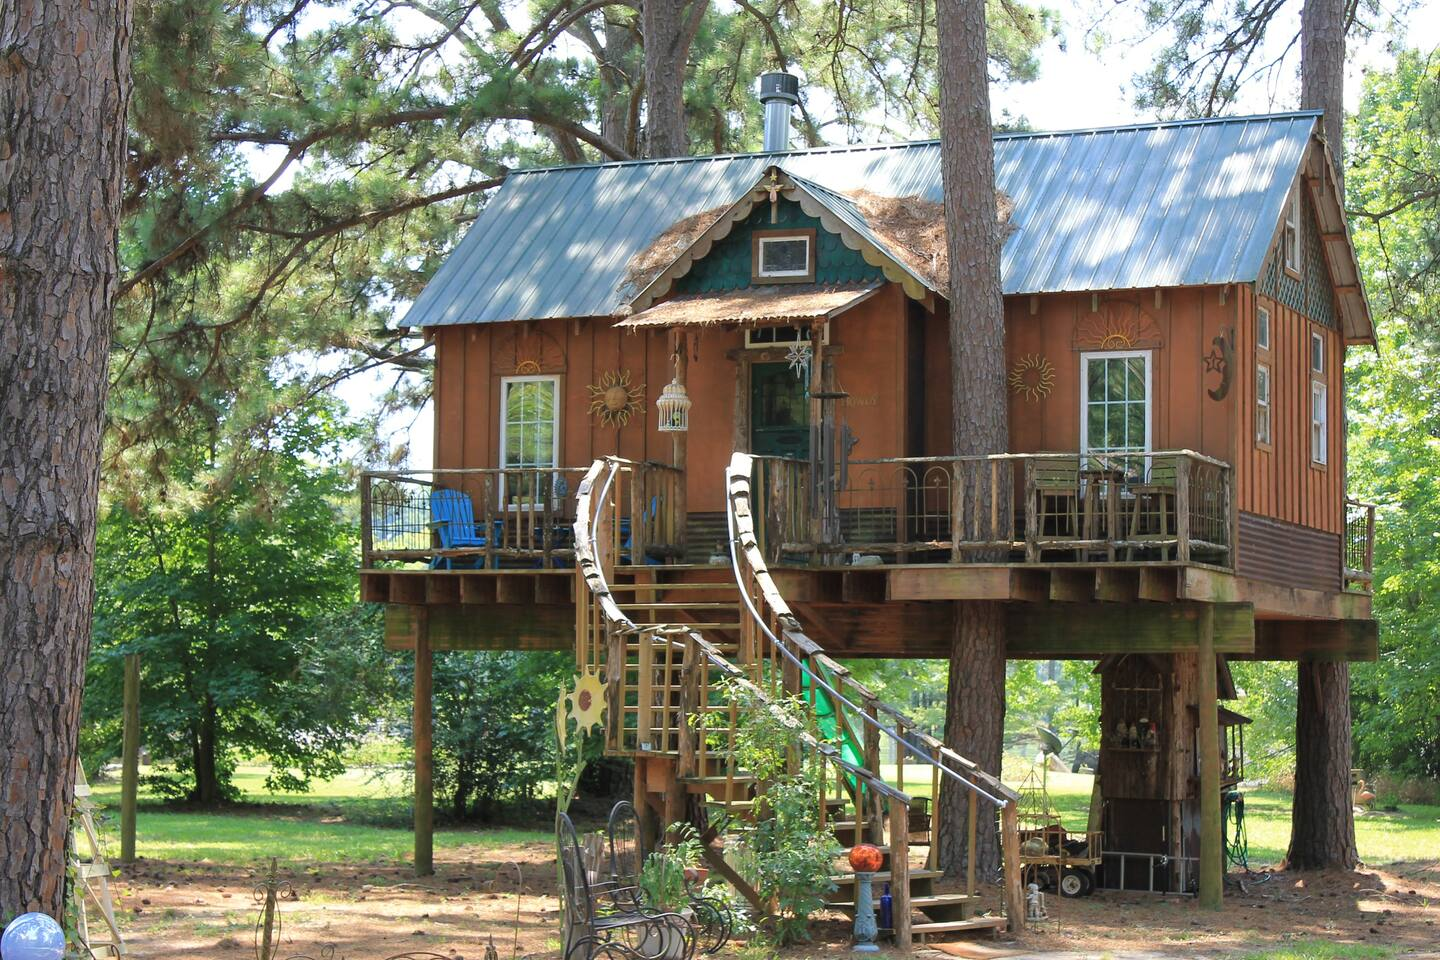 Louisiana Cedar Treehouse Glamping